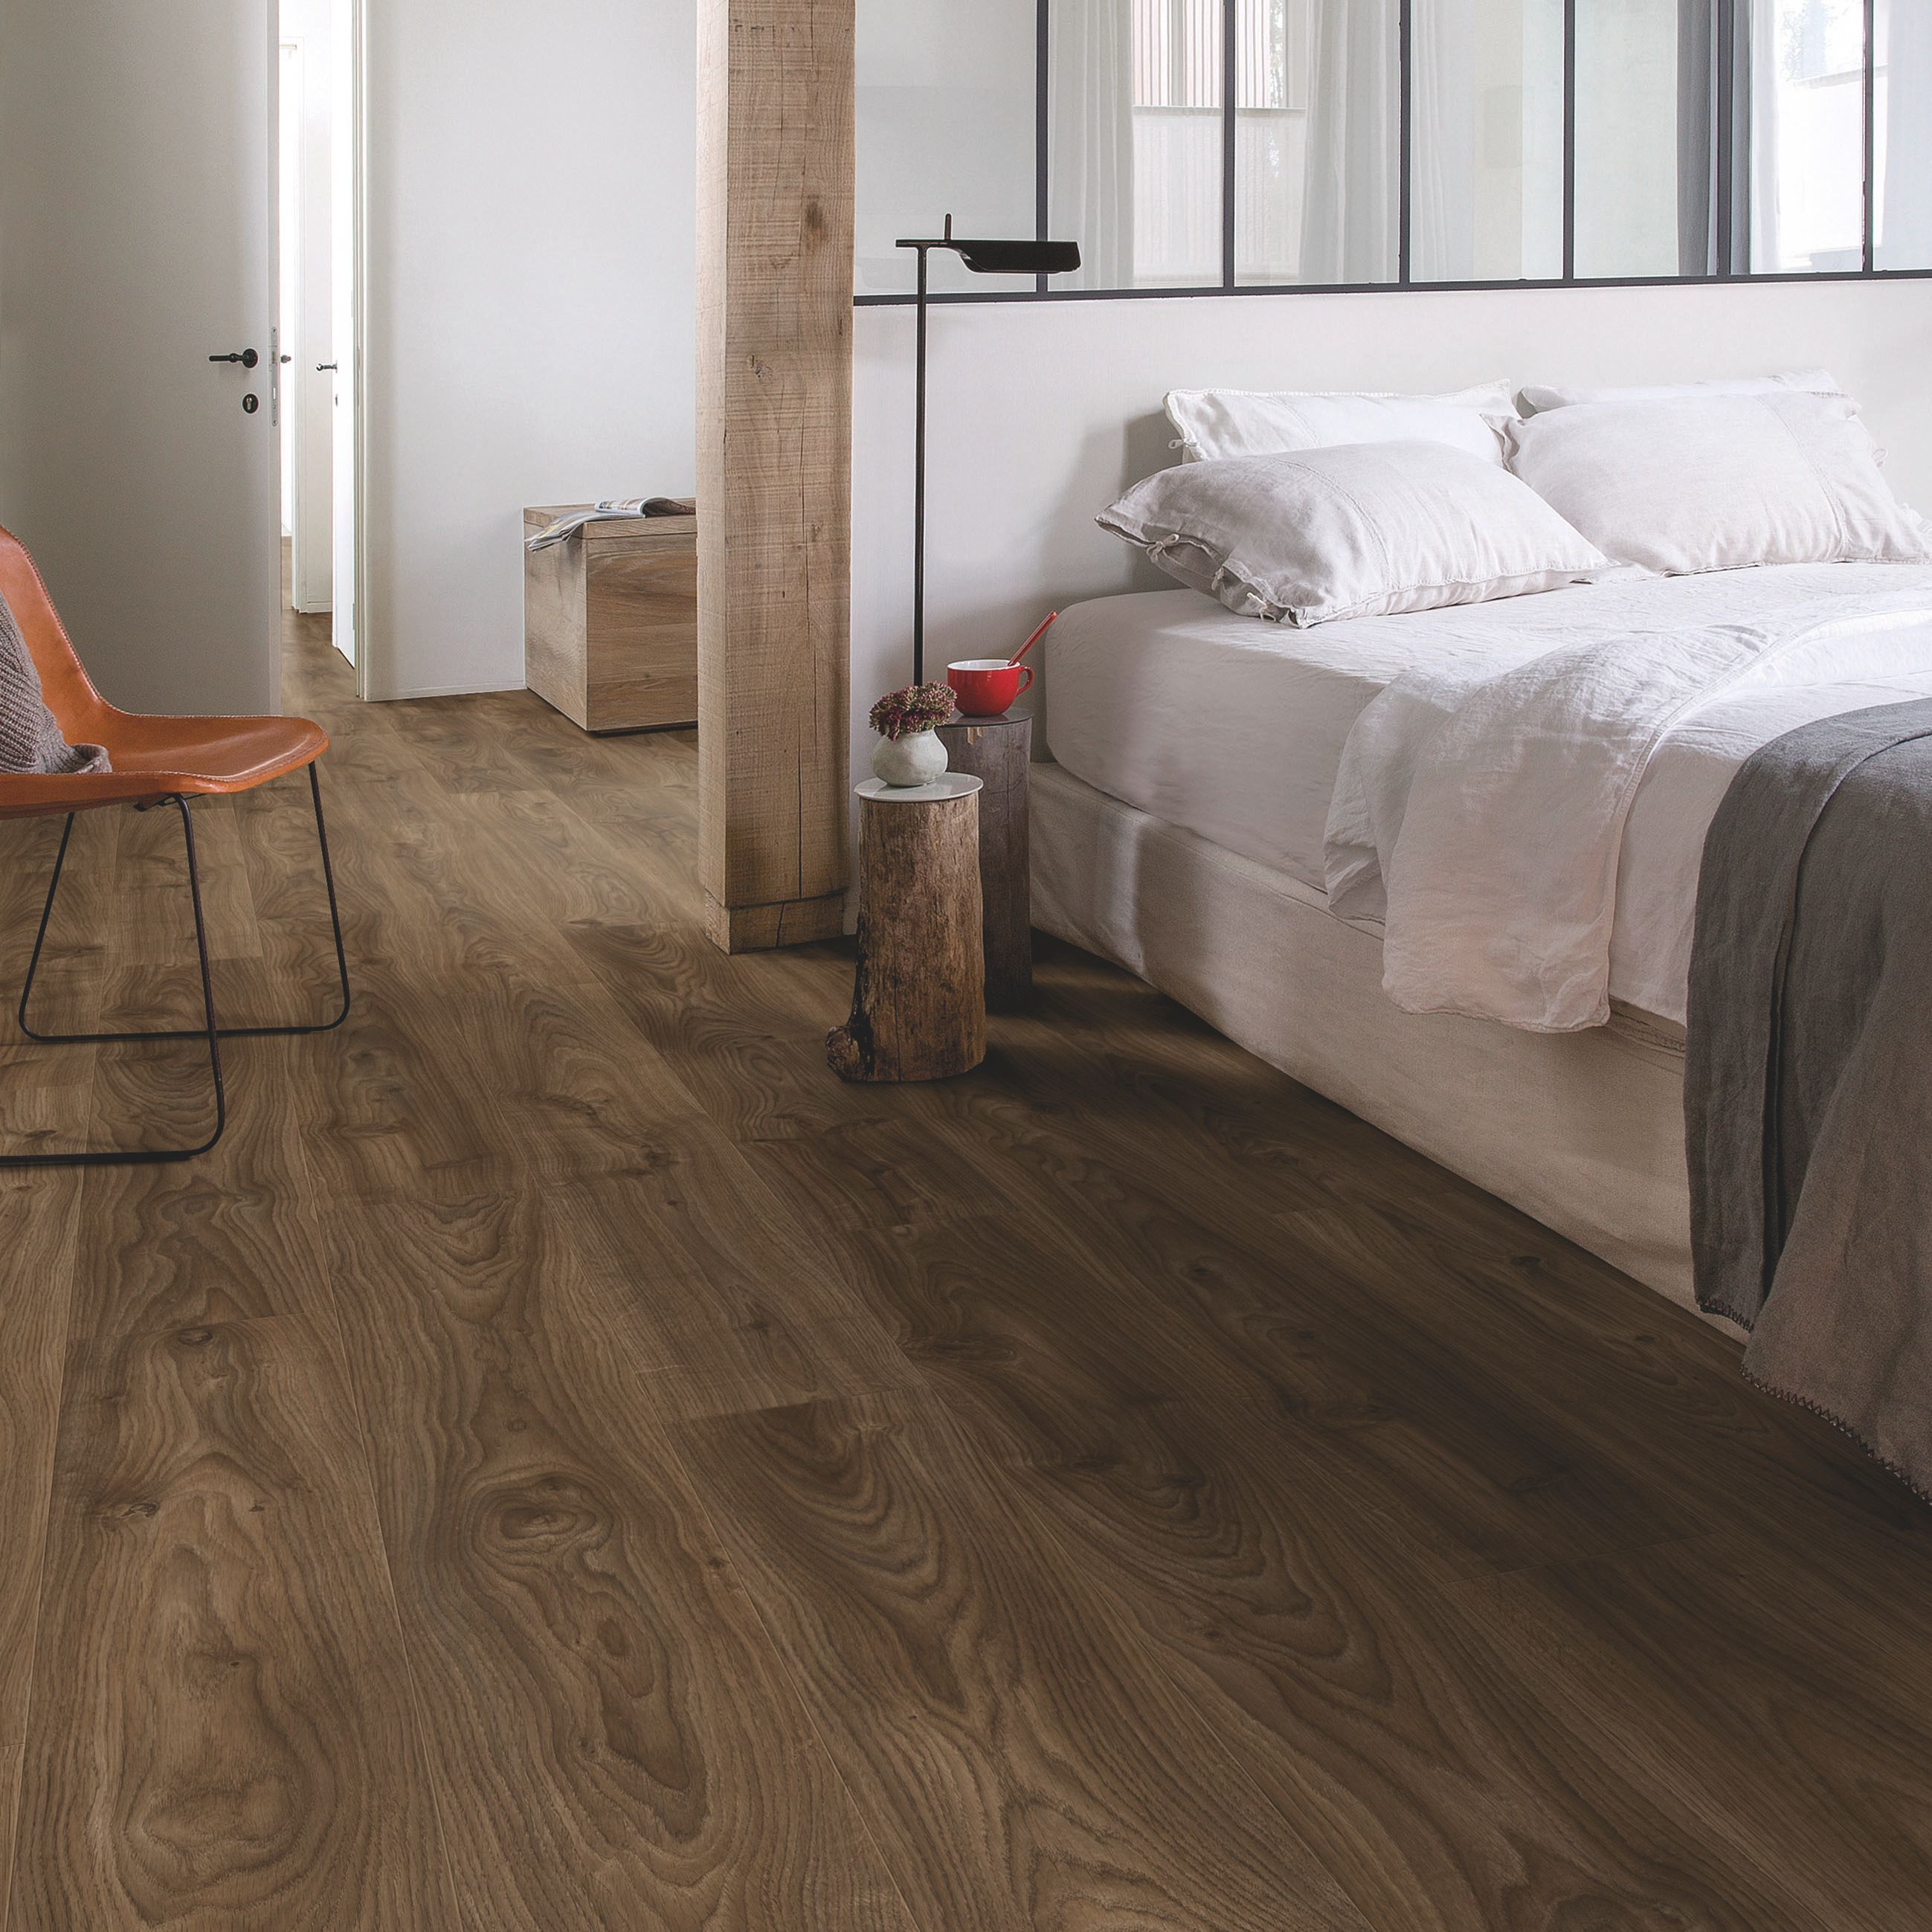 Step paso continental oak effect waterproof luxury vinyl flooring quick step paso continental oak effect waterproof luxury vinyl flooring tile m pack bq for all your home and garden supplies and advice on all the dailygadgetfo Choice Image